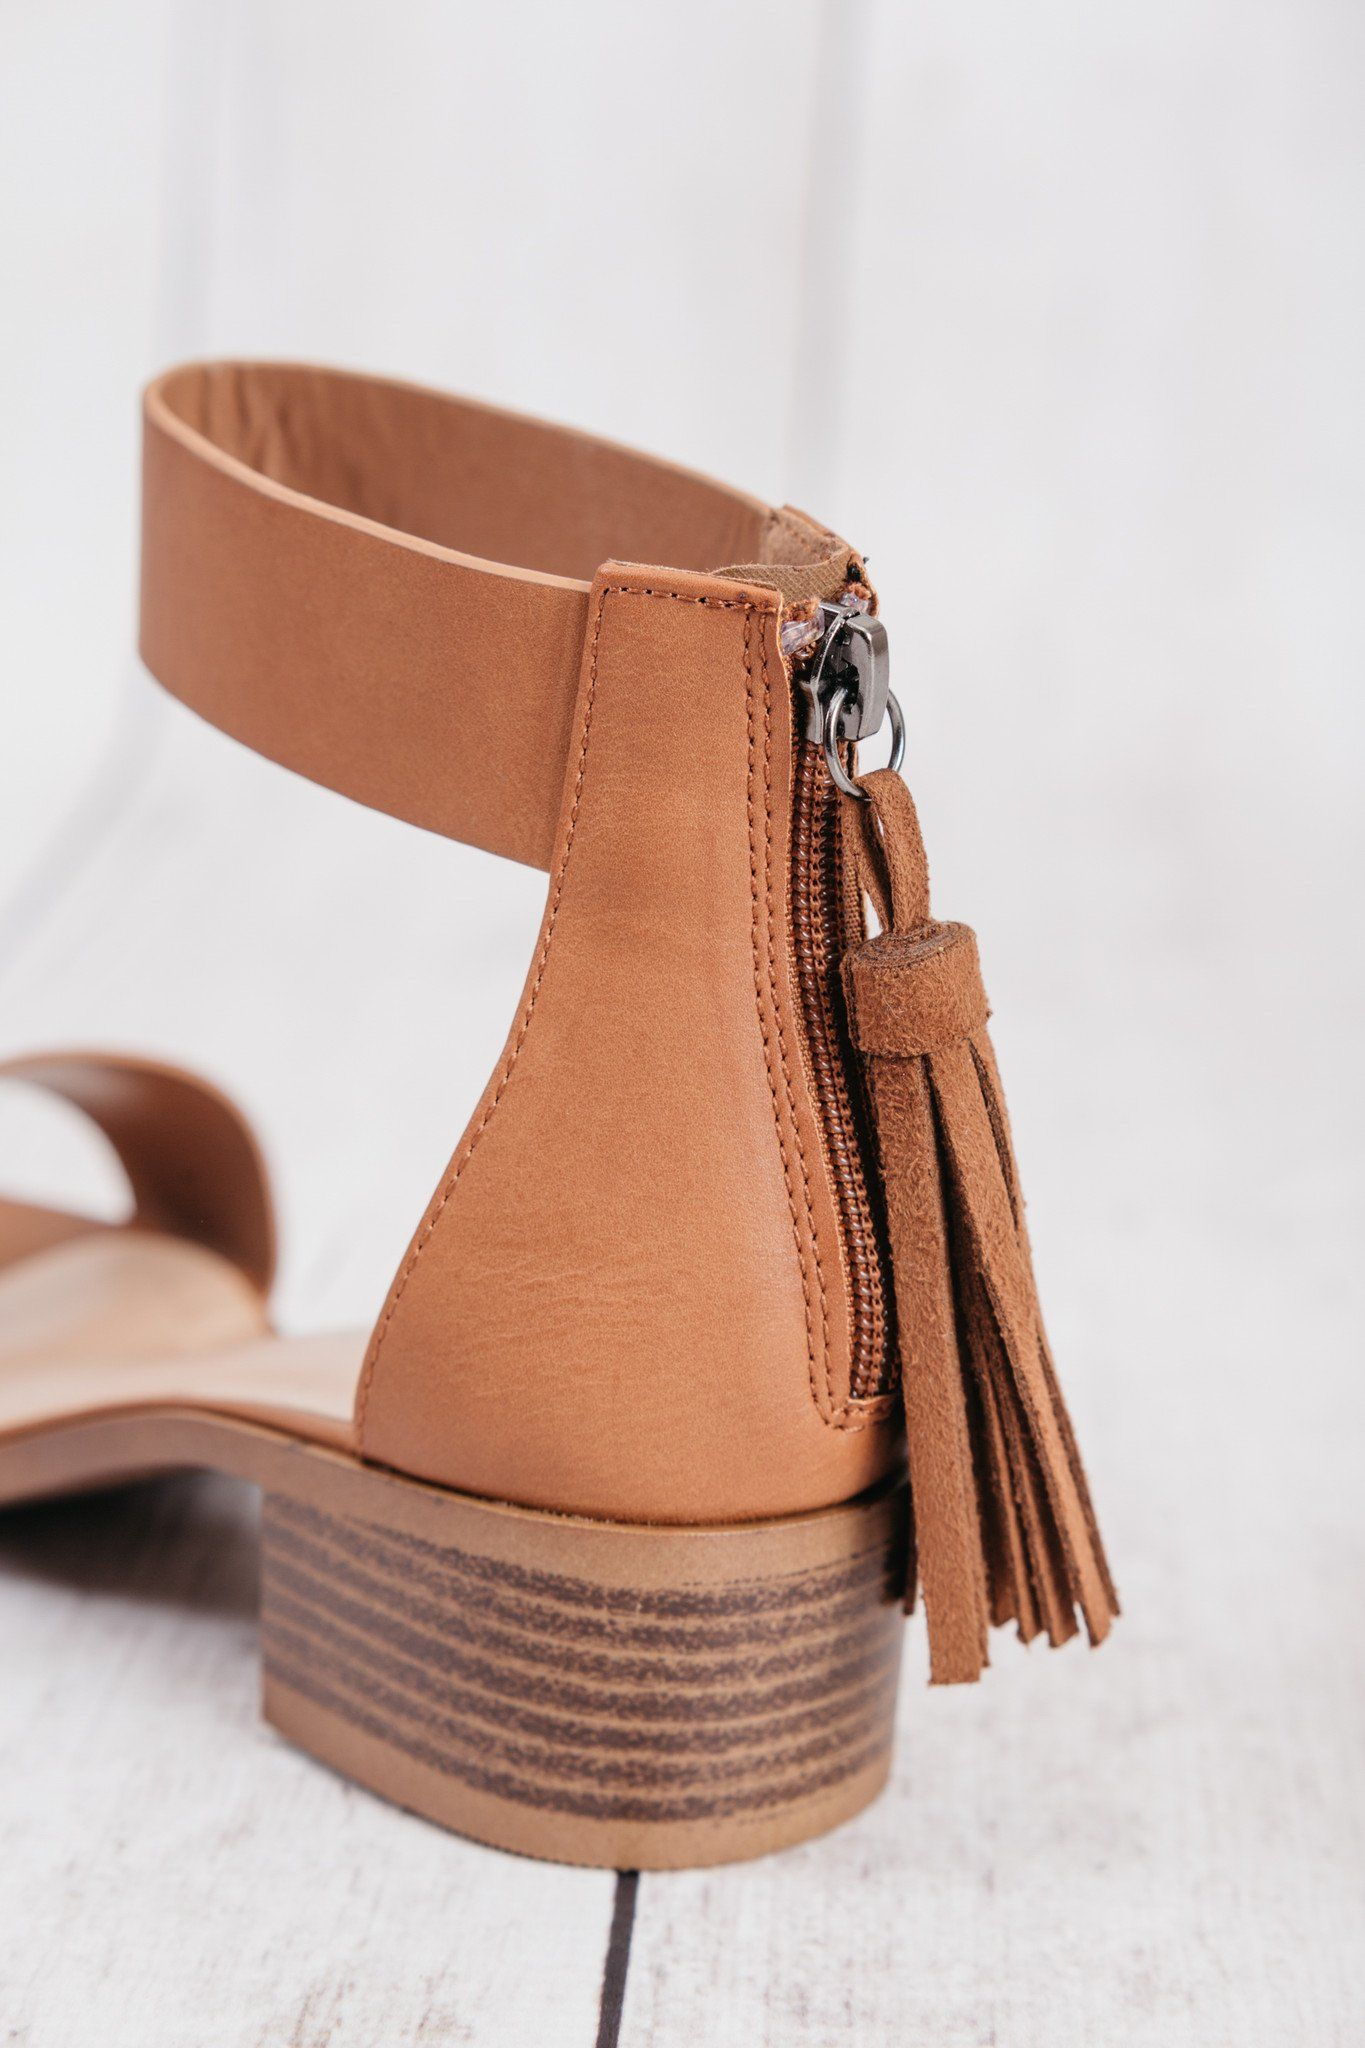 b67bf5602874 city classified women s dark tan briefly leather tassled zipper ankle strap  sandals